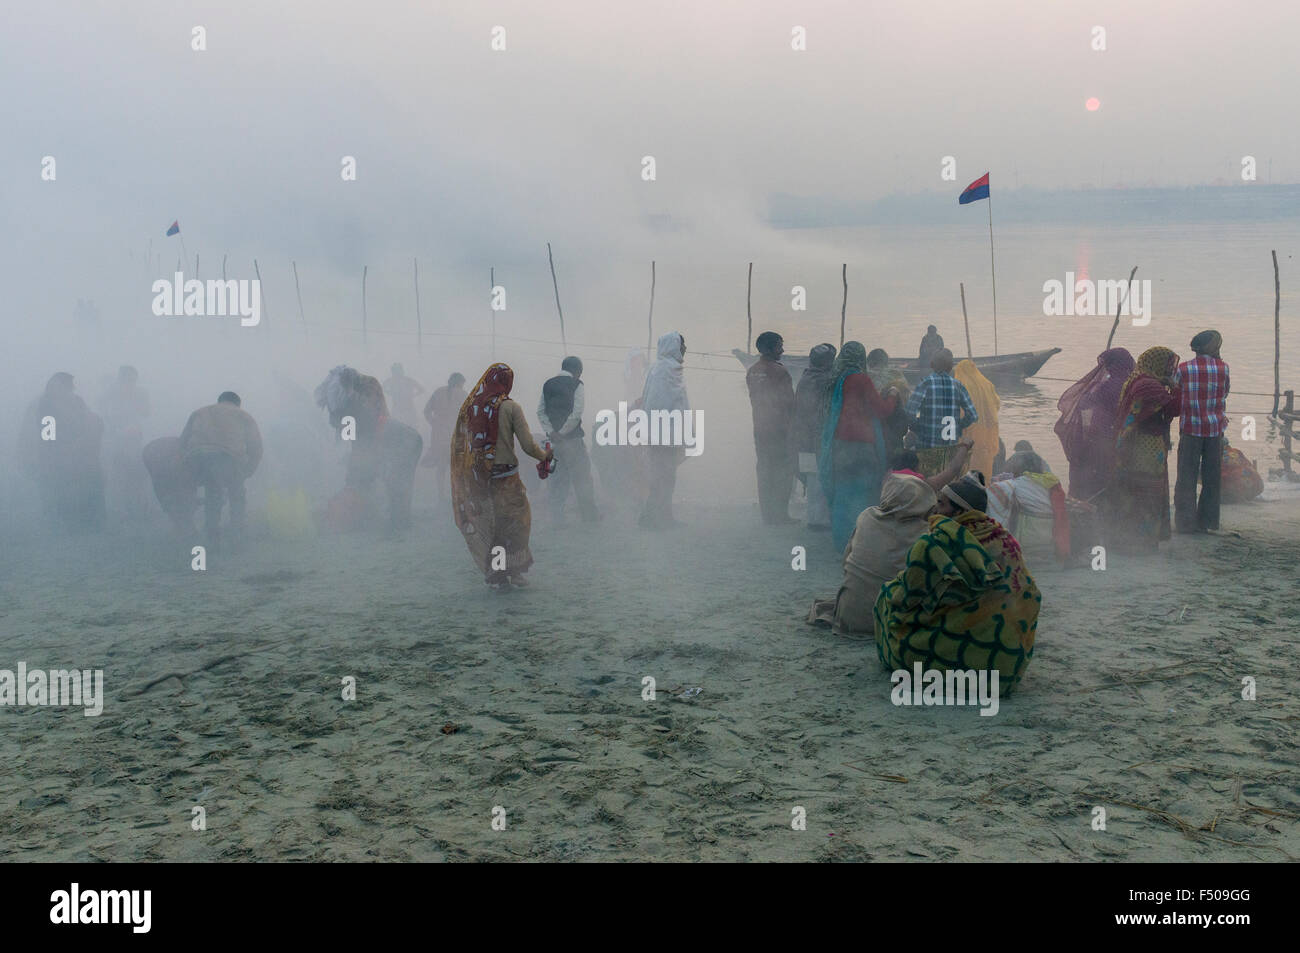 People taking bath in the fog early morning at the Sangam, the confluence of the rivers Ganges, Yamuna and Saraswati, Stock Photo